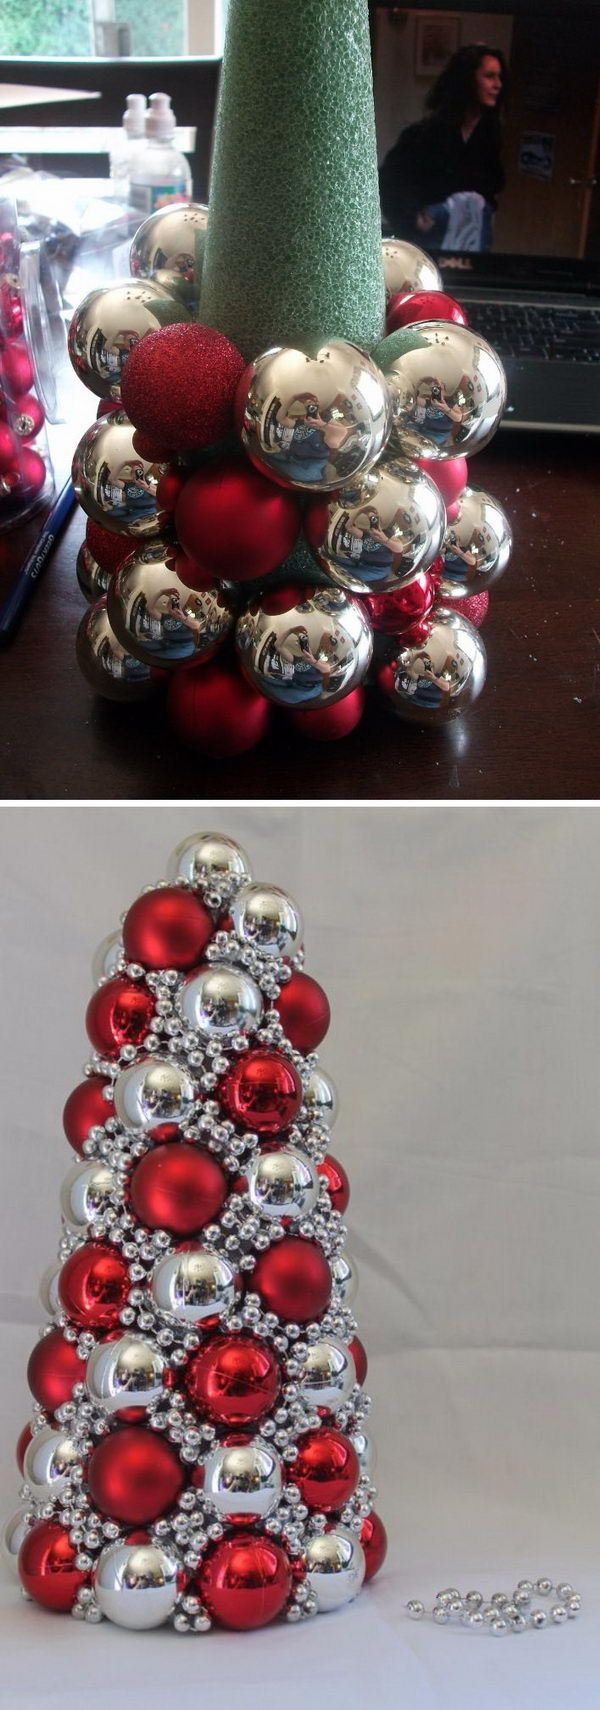 Diy christmas party decorations - 20 Great Ways To Decorate Your Home With Christmas Ornaments